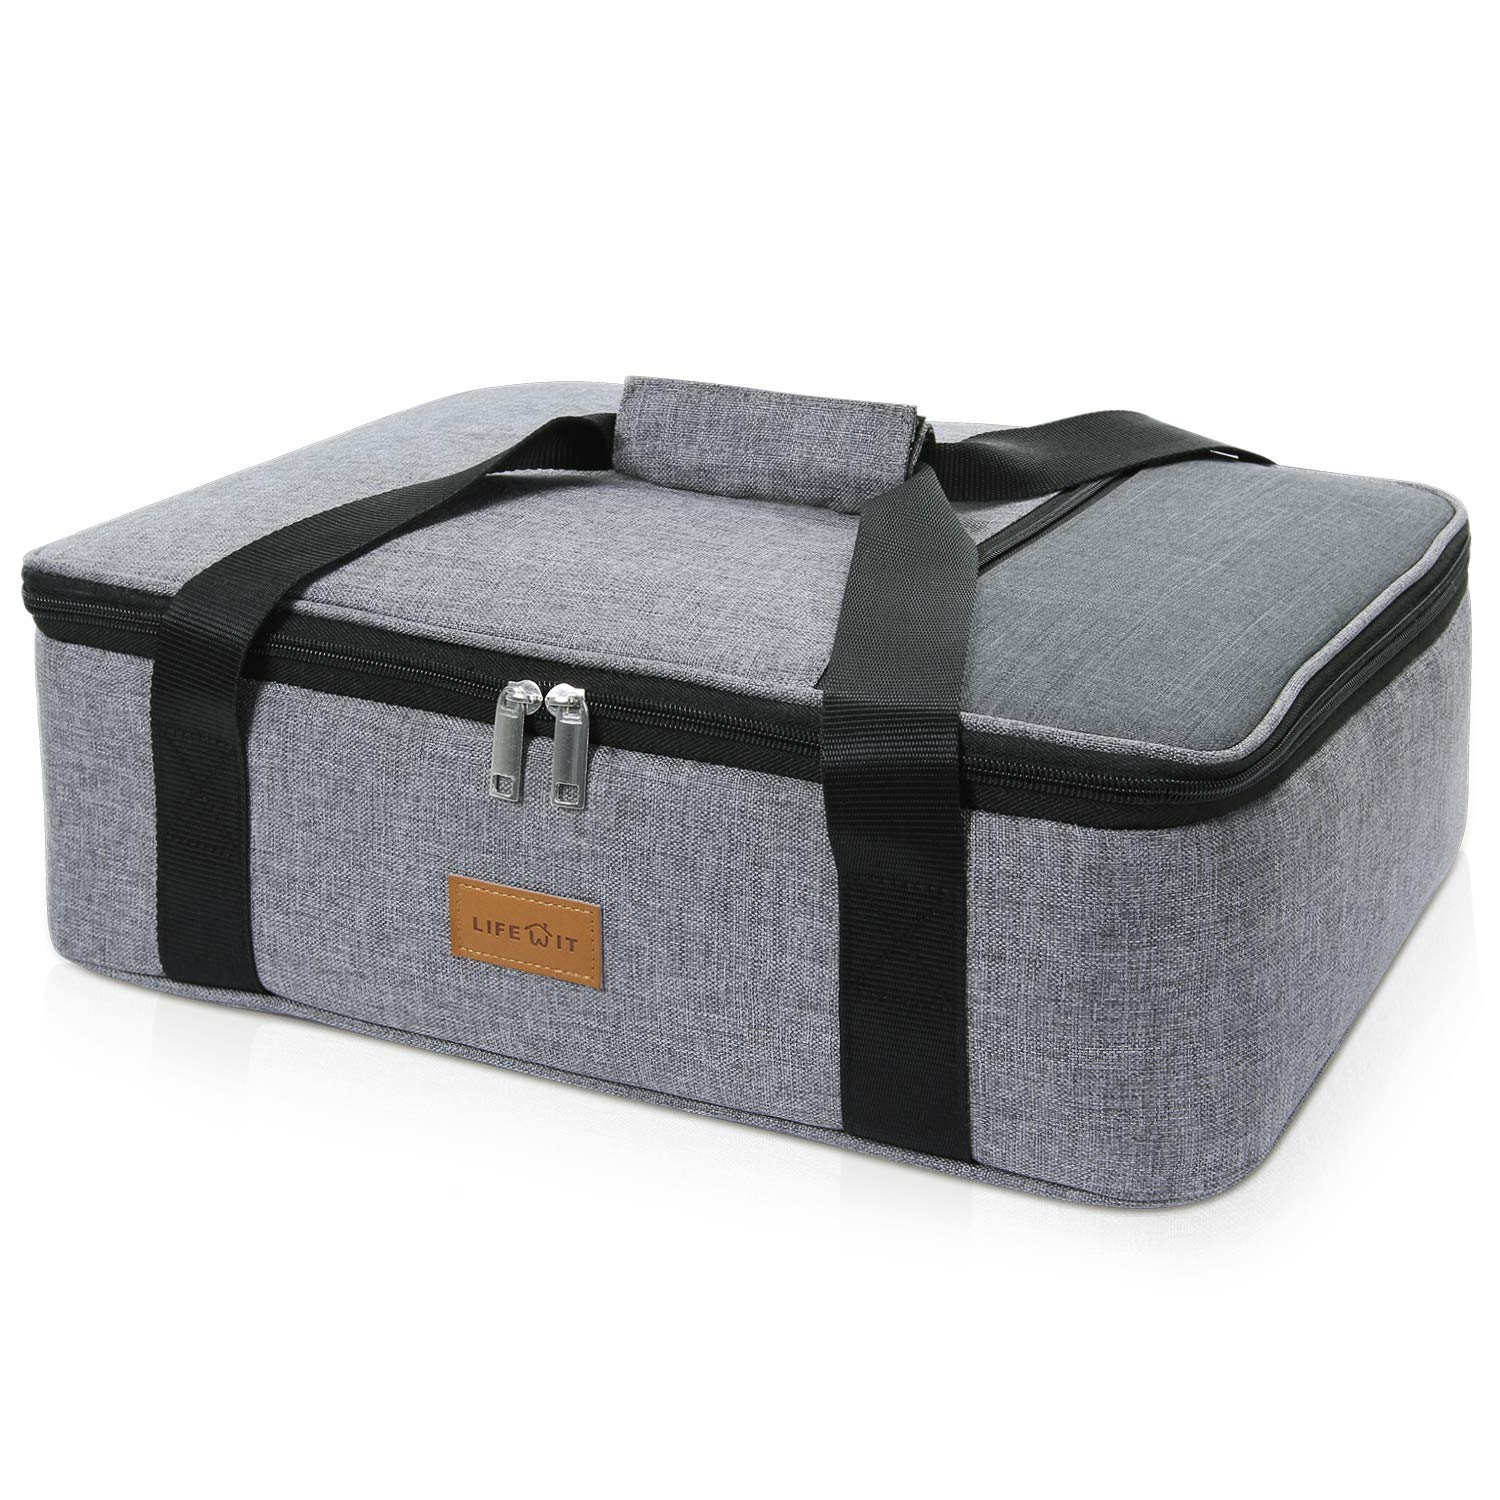 Lifewit Insulated Casserole Dish Carrier Thermal Lasagna Lugger for Potluck Parties/Picnic/Beach, Lunch Bag to Keep Food Hot/Cold, 16.3 x 12.6 x 4.7, Grey by Lifewit